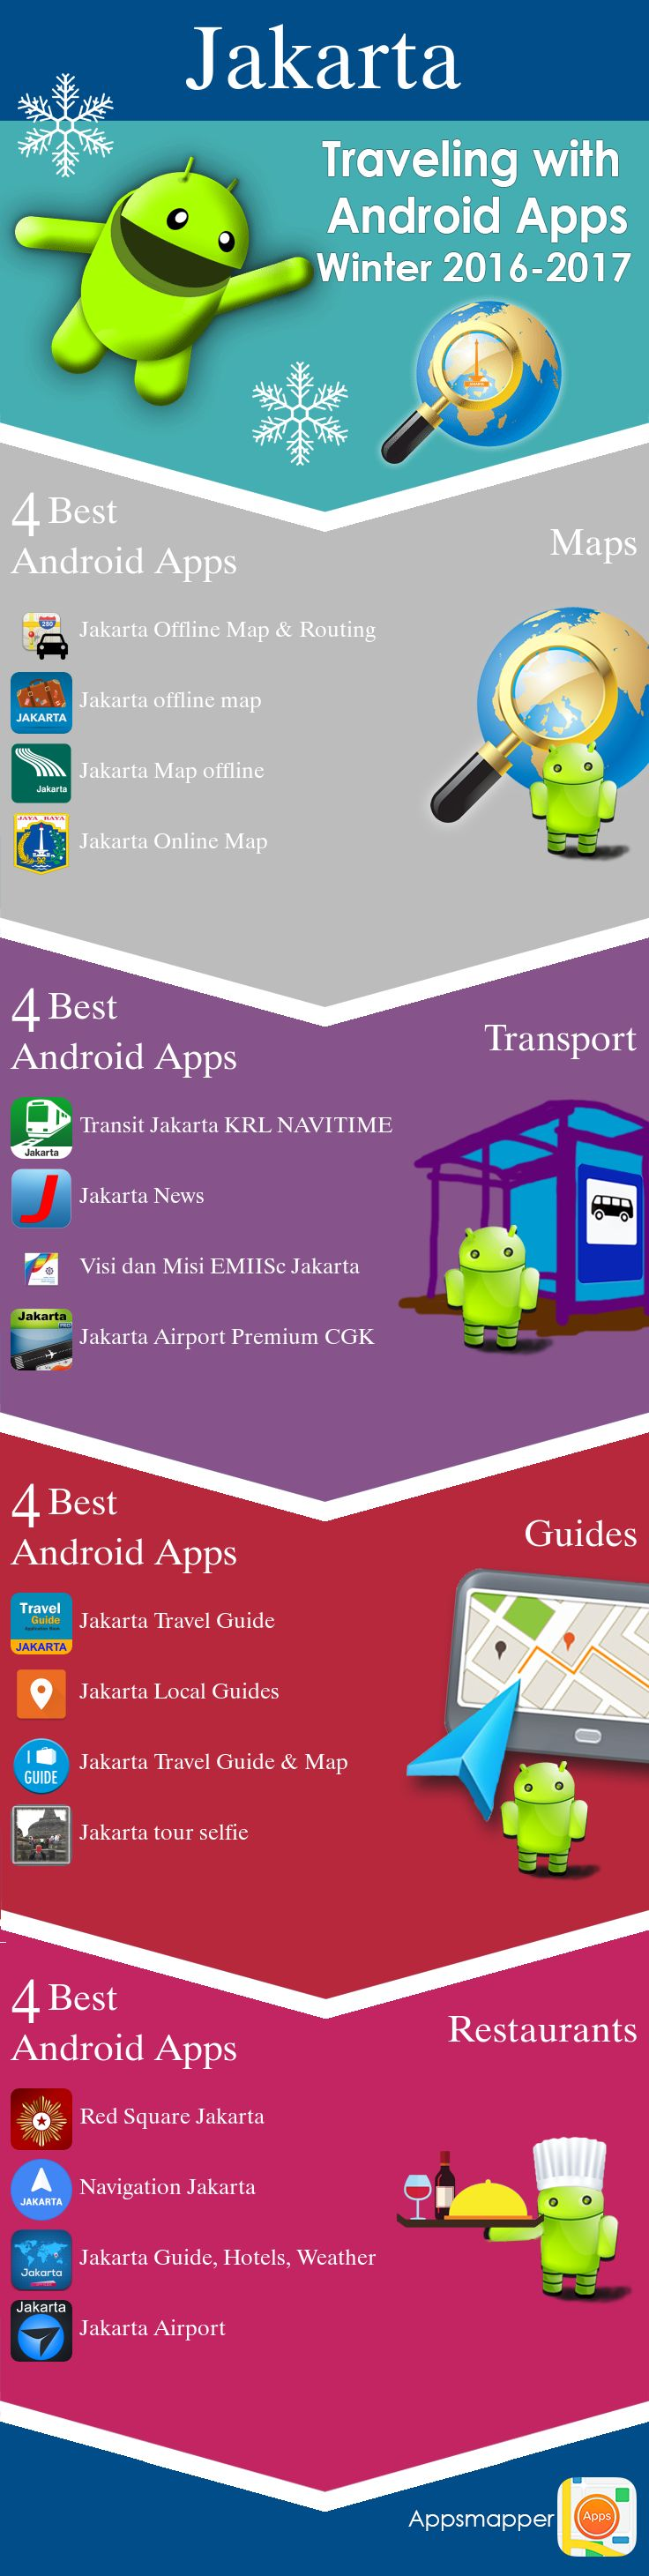 Jakarta Android apps: Travel Guides, Maps, Transportation, Biking, Museums, Parking, Sport and apps for Students.